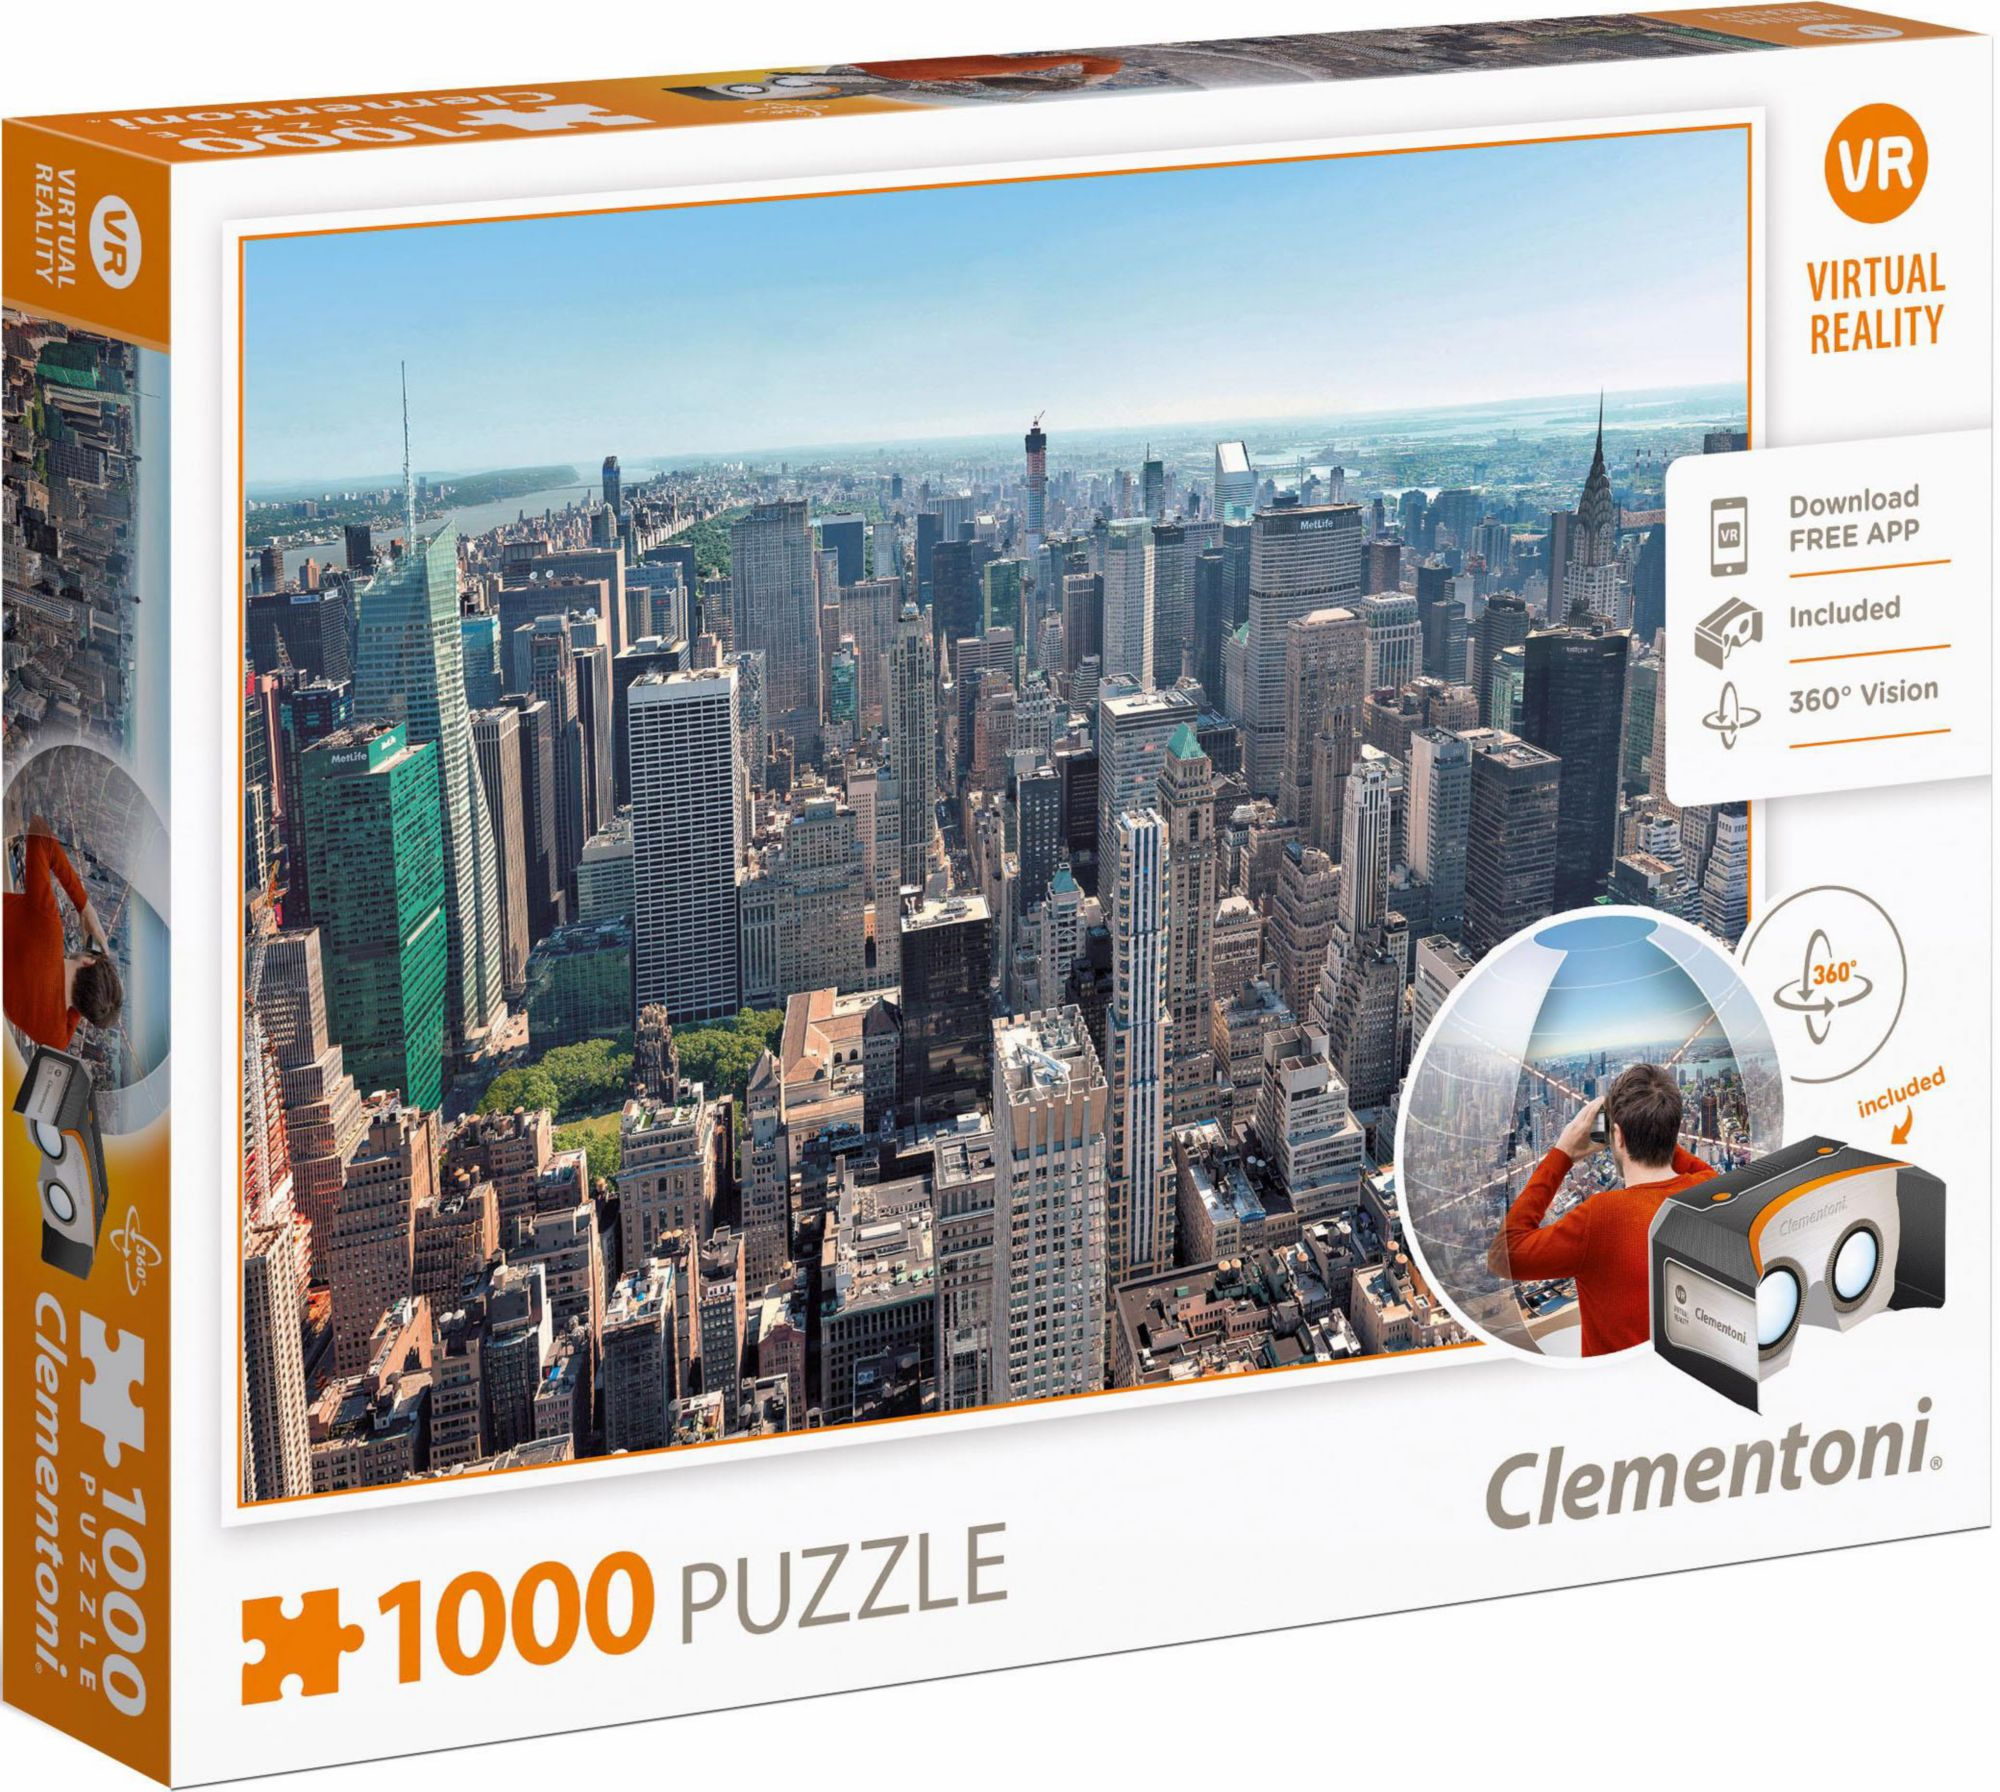 CLEMENTONI Clementoni Puzzle, 1000 Teile, »New York, Virtual Reality«